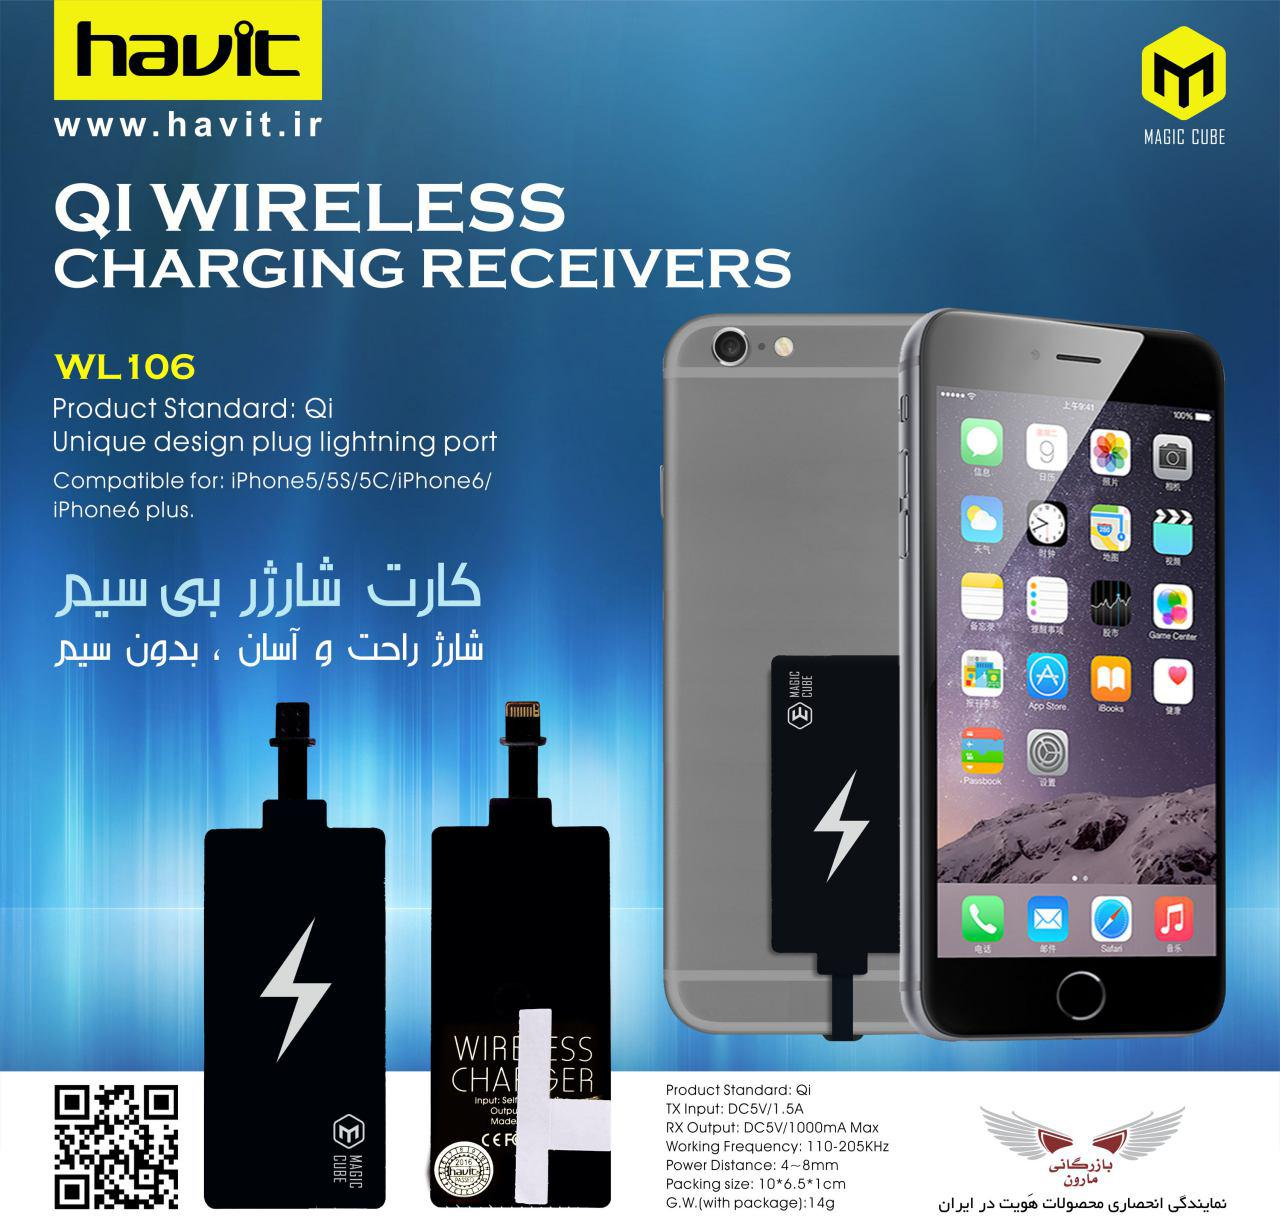 HAVIT WL106 WIRELESS CHARGER